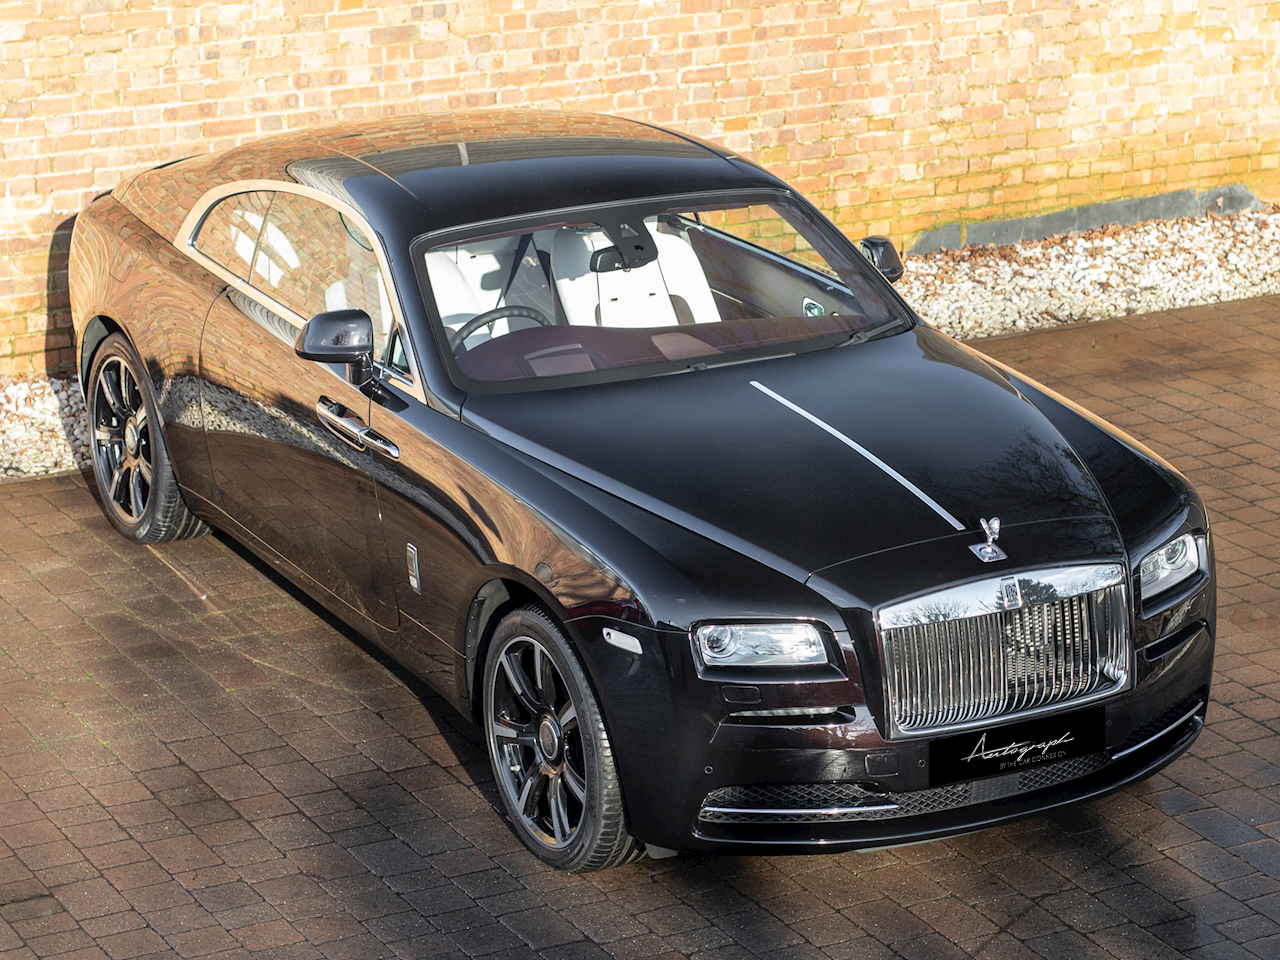 Rolls Royce Wraith 'Inspired by British Music' Ronnie Wood